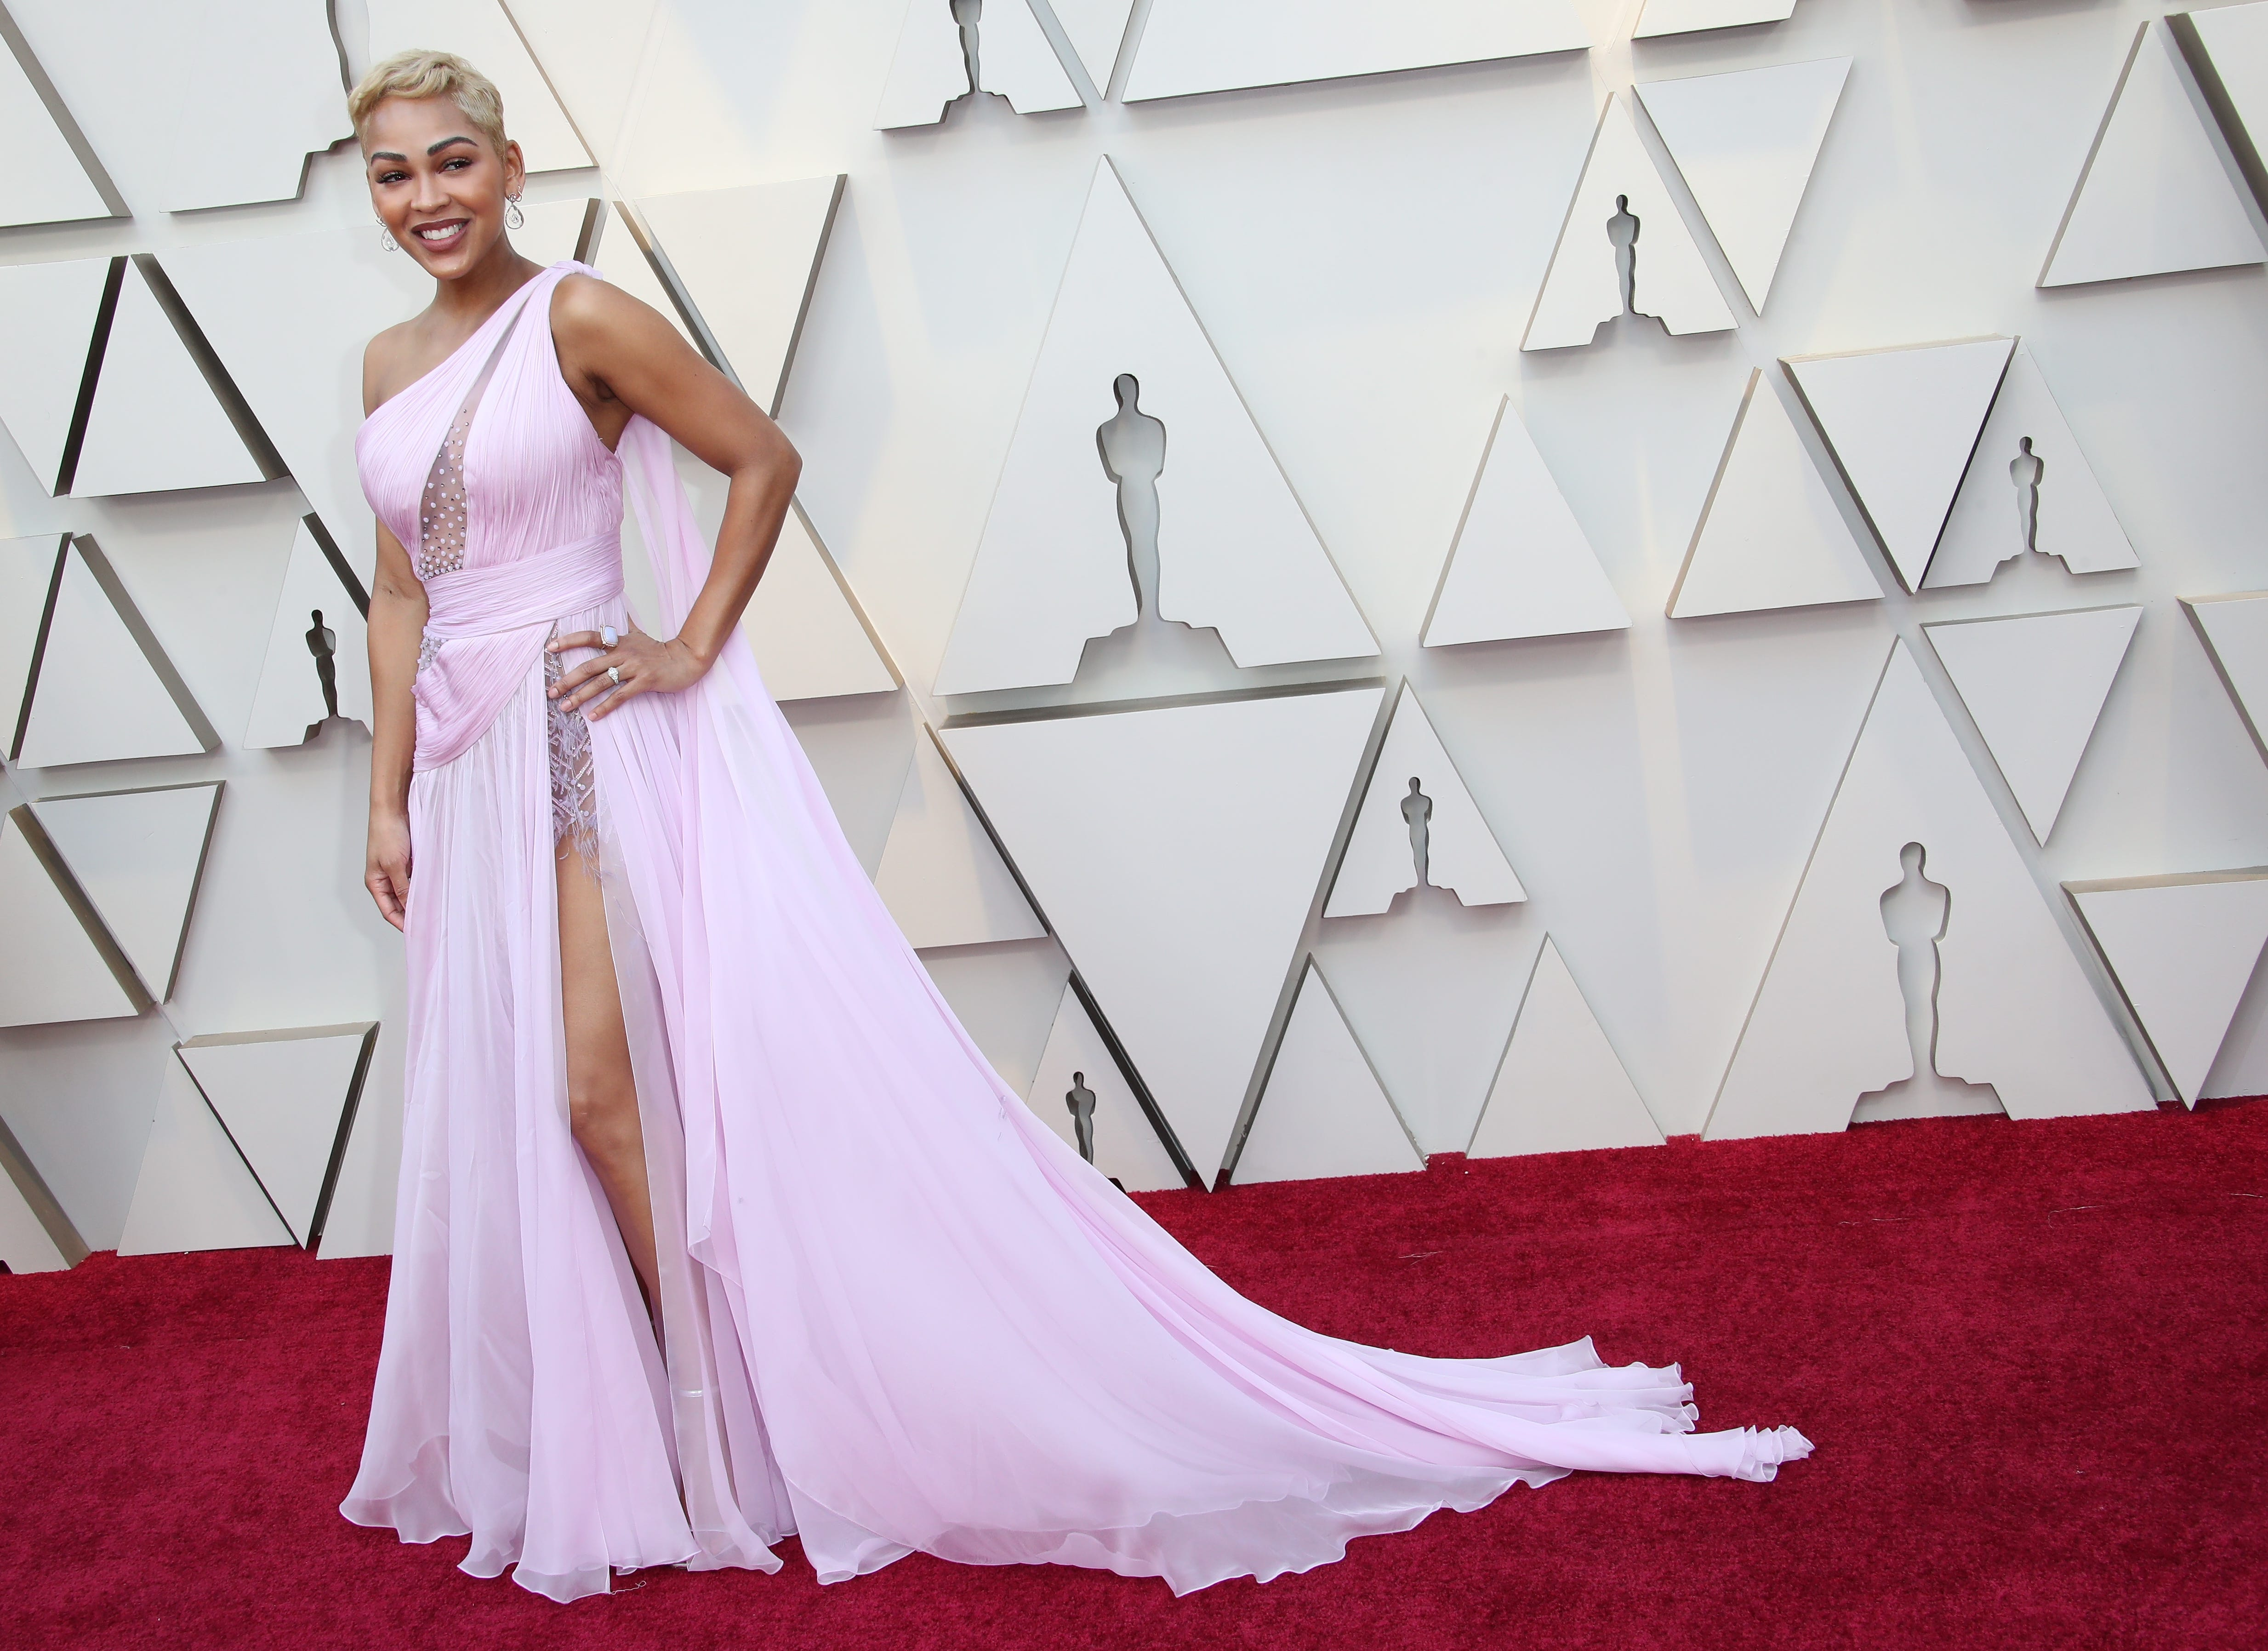 February 24, 2019; Los Angeles, CA, USA; Meagan Good arrives at the 91st Academy Awards at the Dolby Theatre. Mandatory Credit: Dan MacMedan-USA TODAY NETWORK (Via OlyDrop)